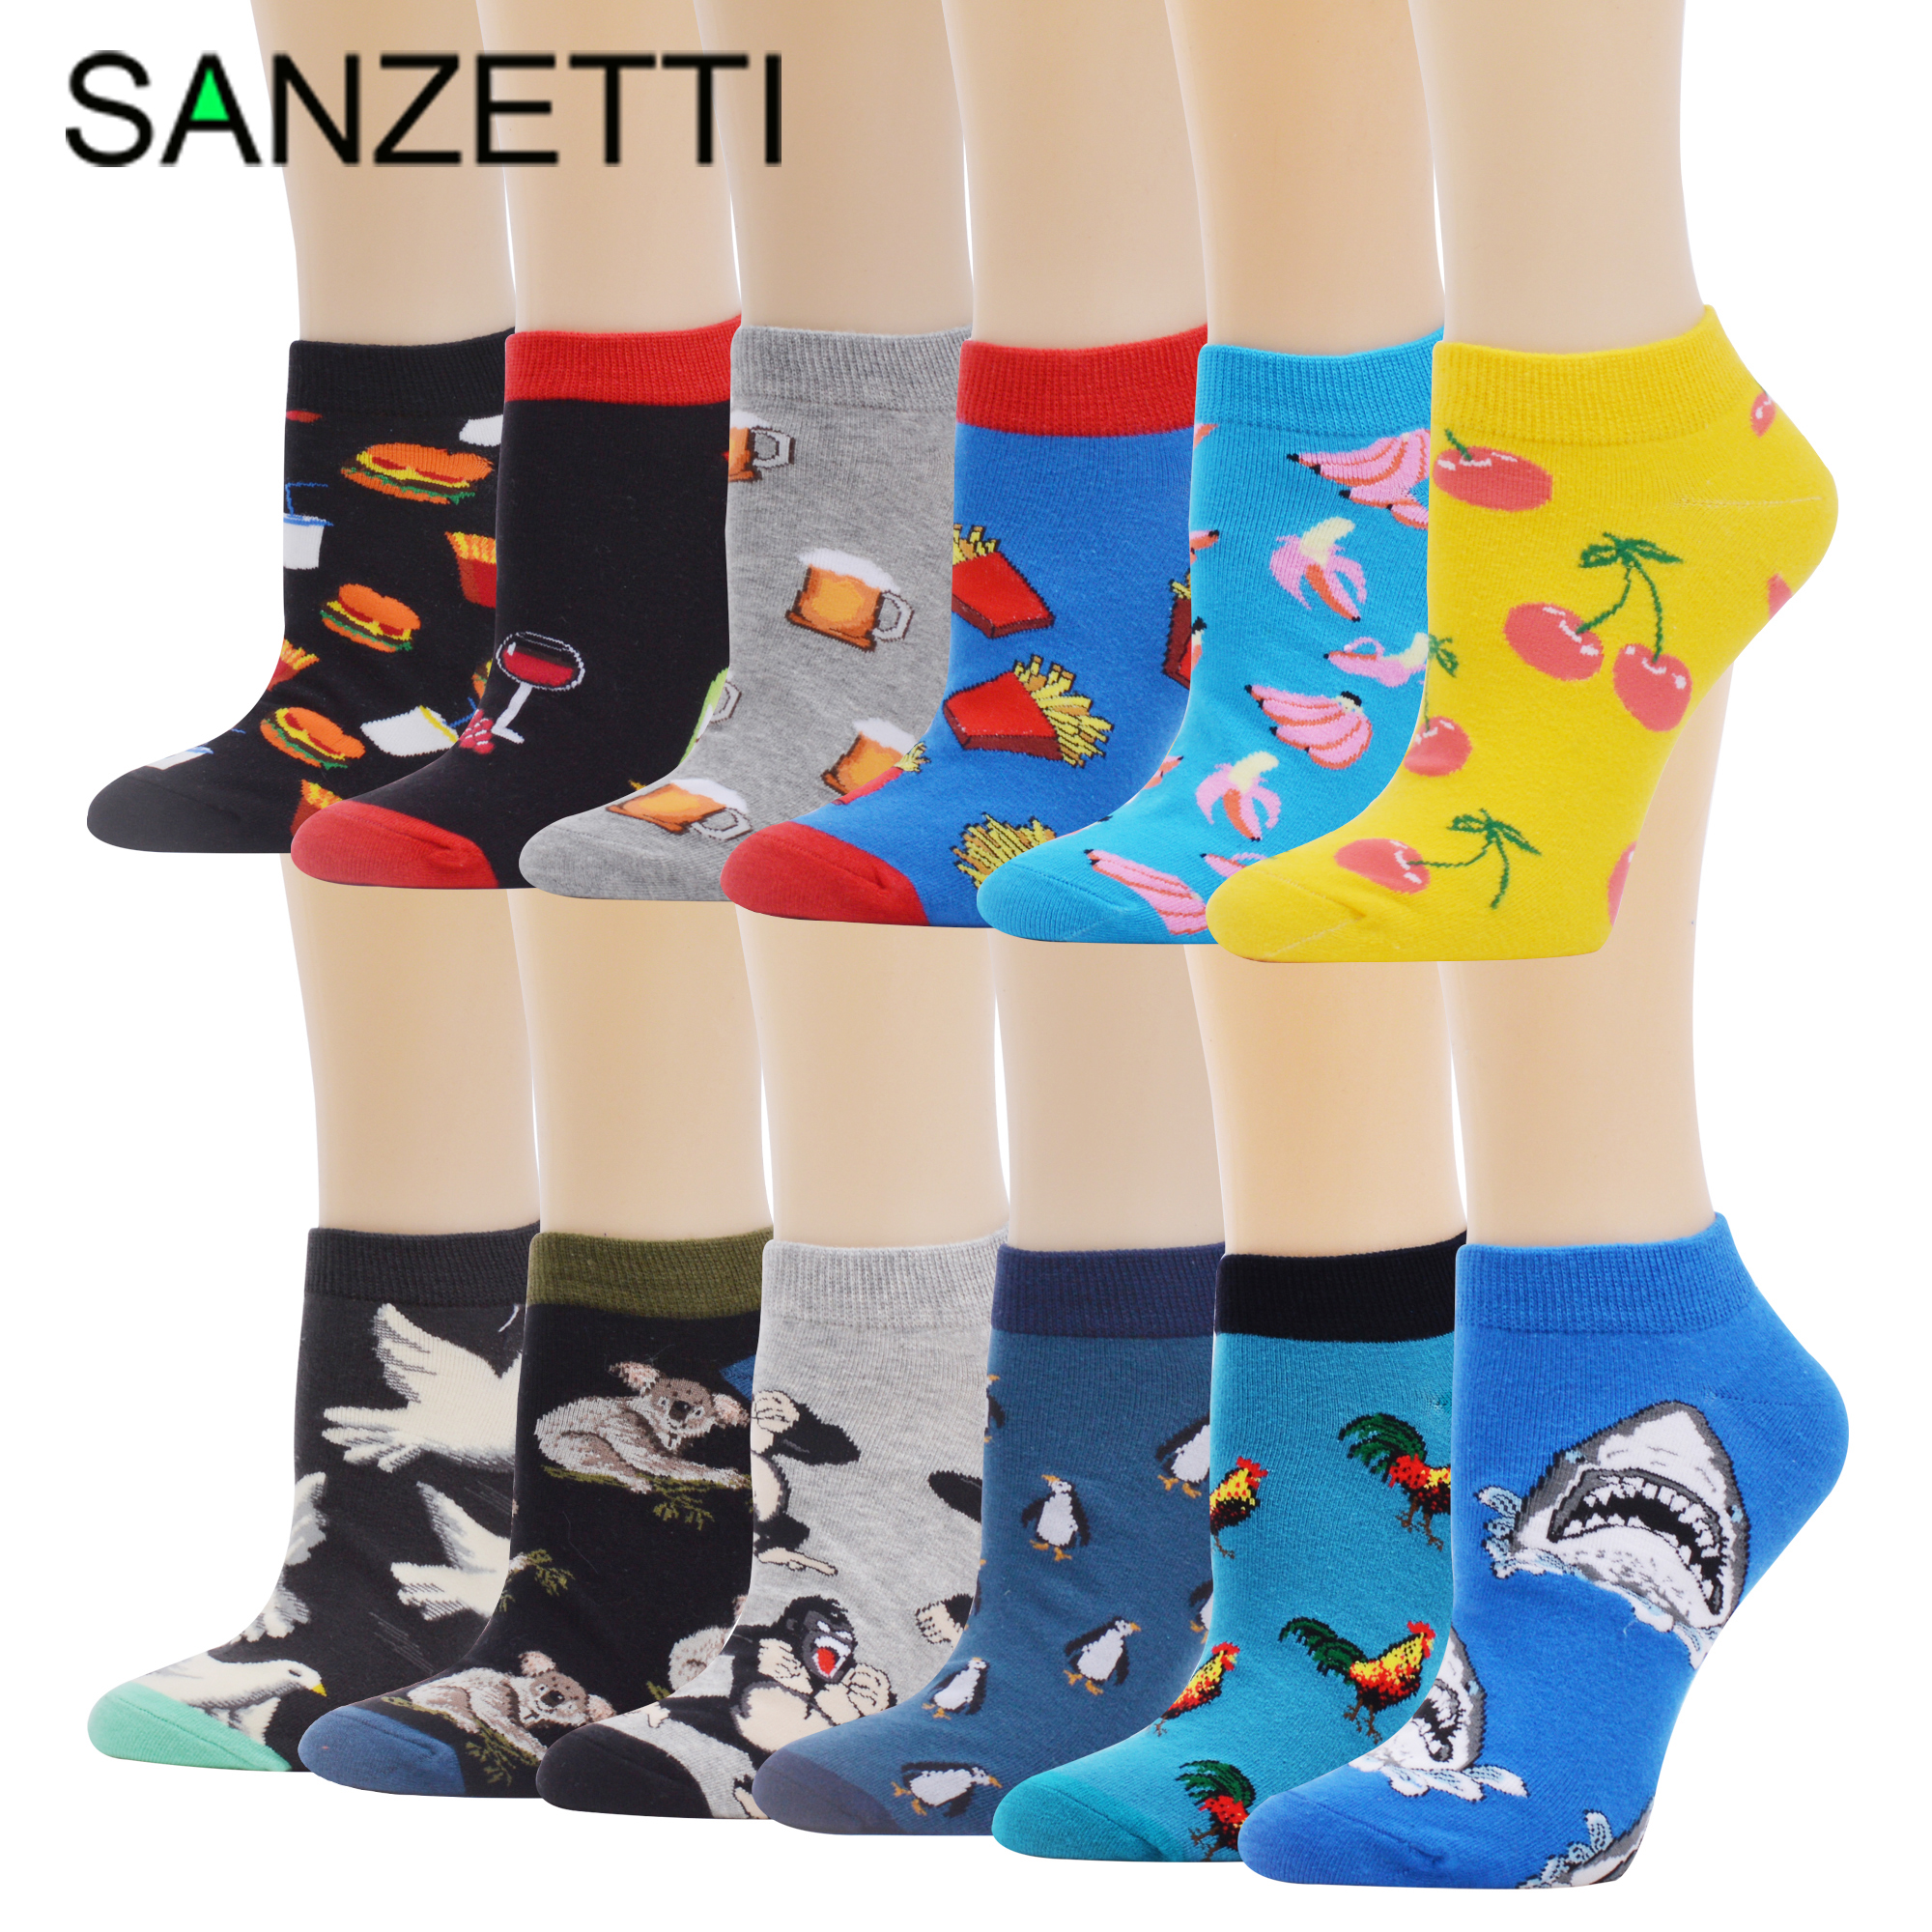 SANZETTI 5-12 Pairs Men's Ankle Socks Summer Colorful Happy Funny Combed Cotton Short Burger Pattern Stripe Wedding Party Socks